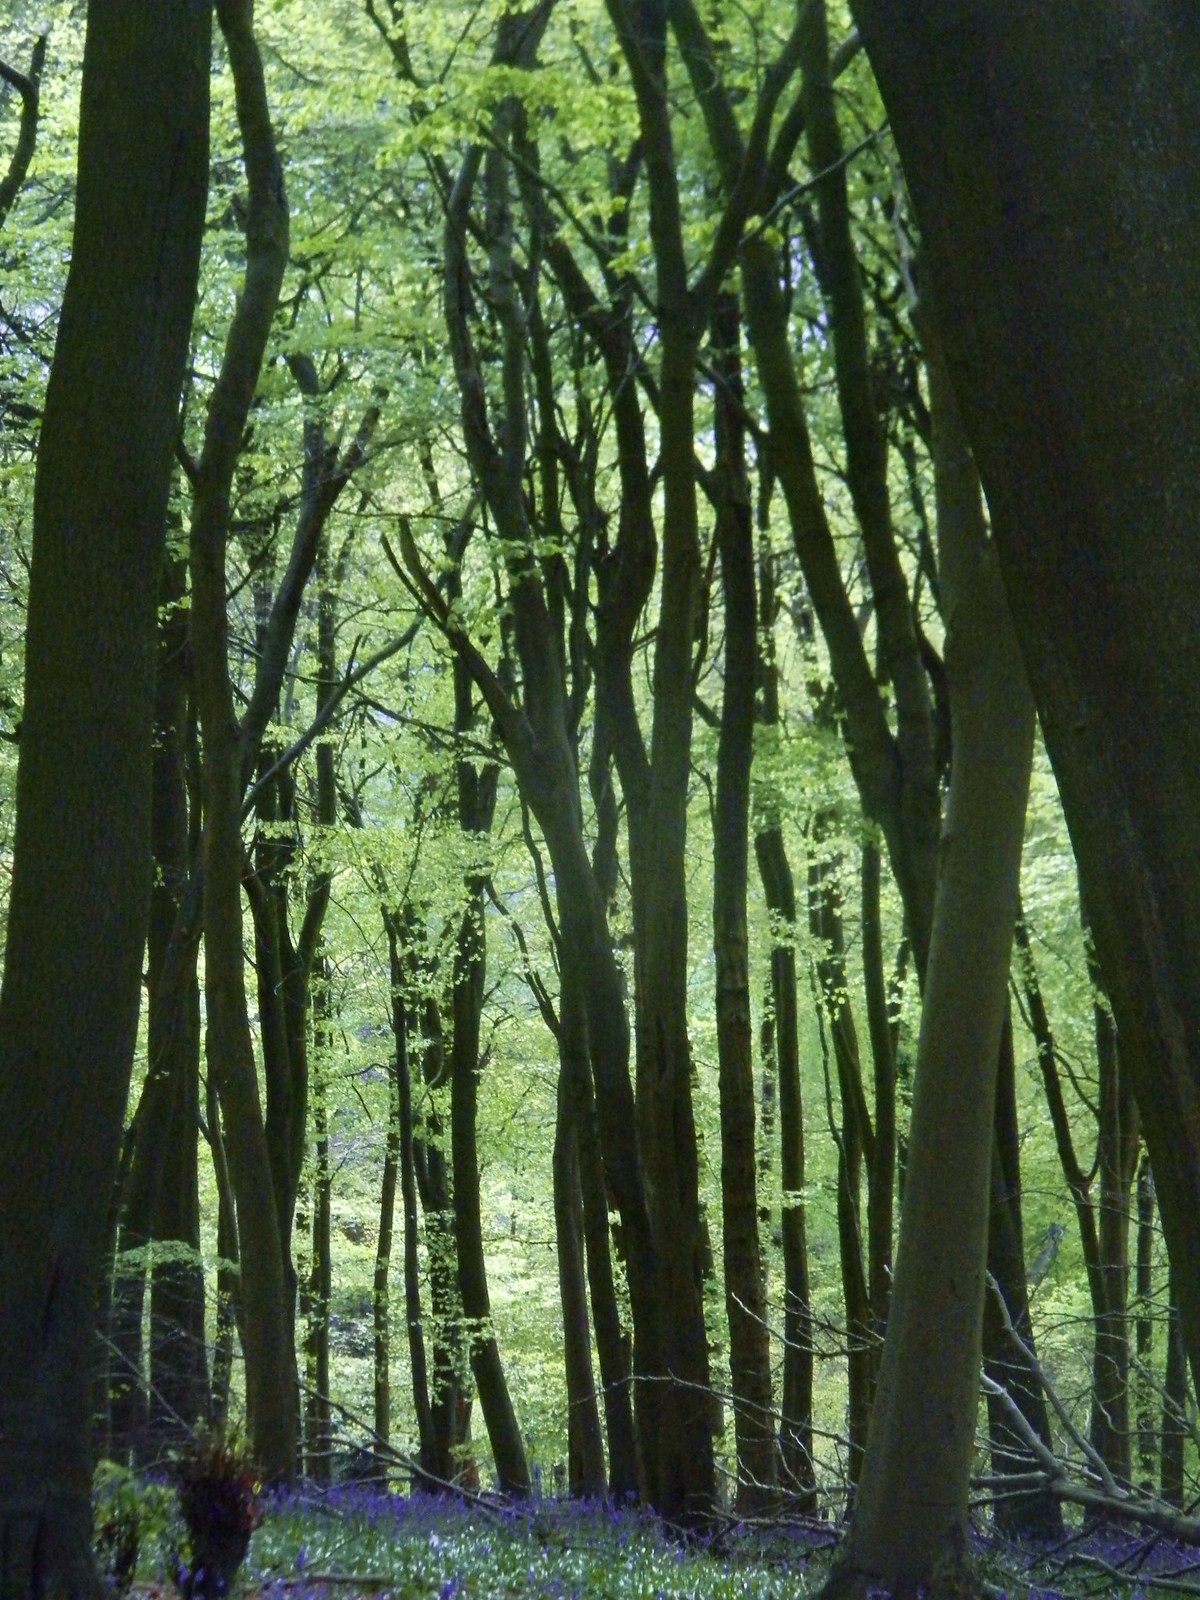 Tree trunks, green leaves, touch of blue Tring to Berkhamsted just after Brownlow